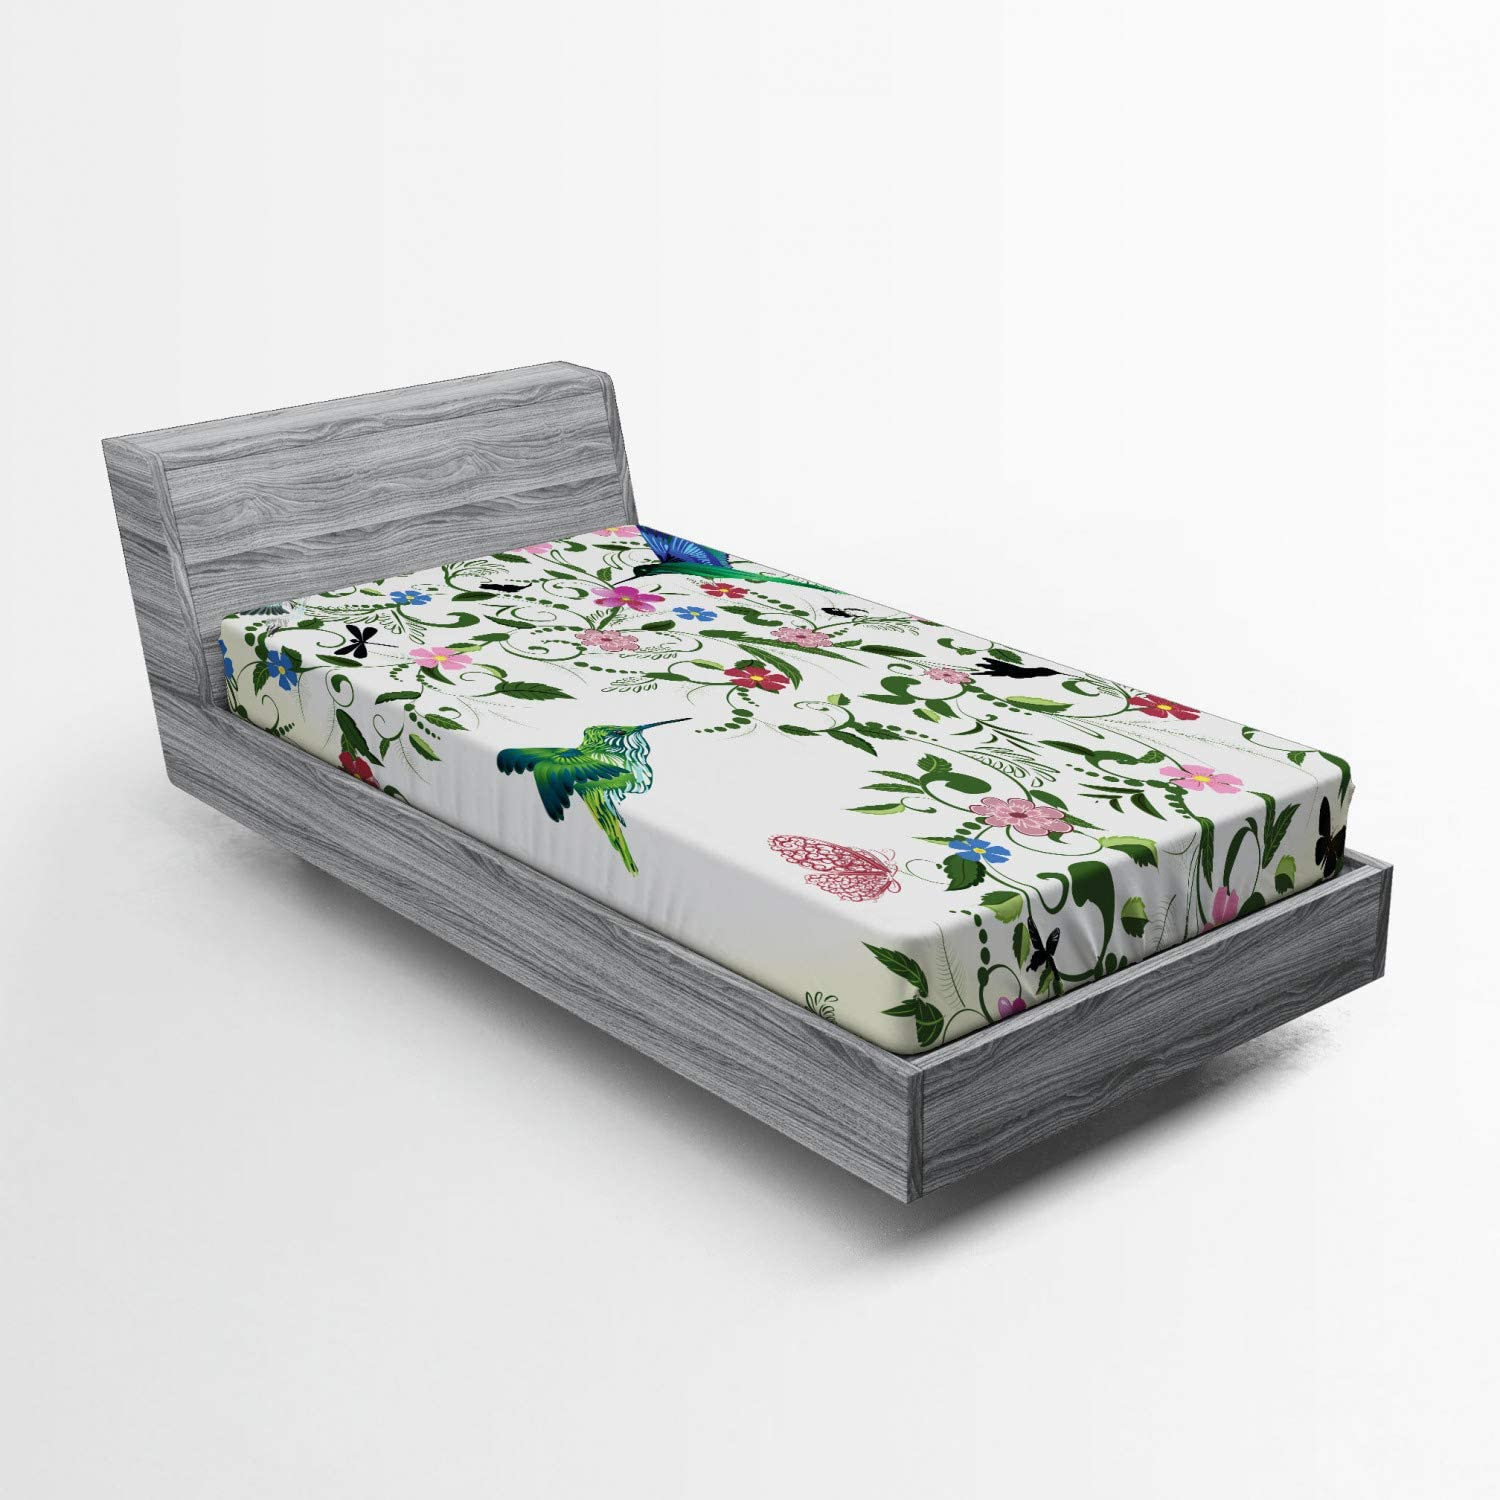 White Black Soft Decorative Fabric Bedding All-Round Elastic Pocket Young Girl Hugging a Dragon with Wings and Scales Mythical Creature Design Lunarable Fantasy Fitted Sheet Queen Size